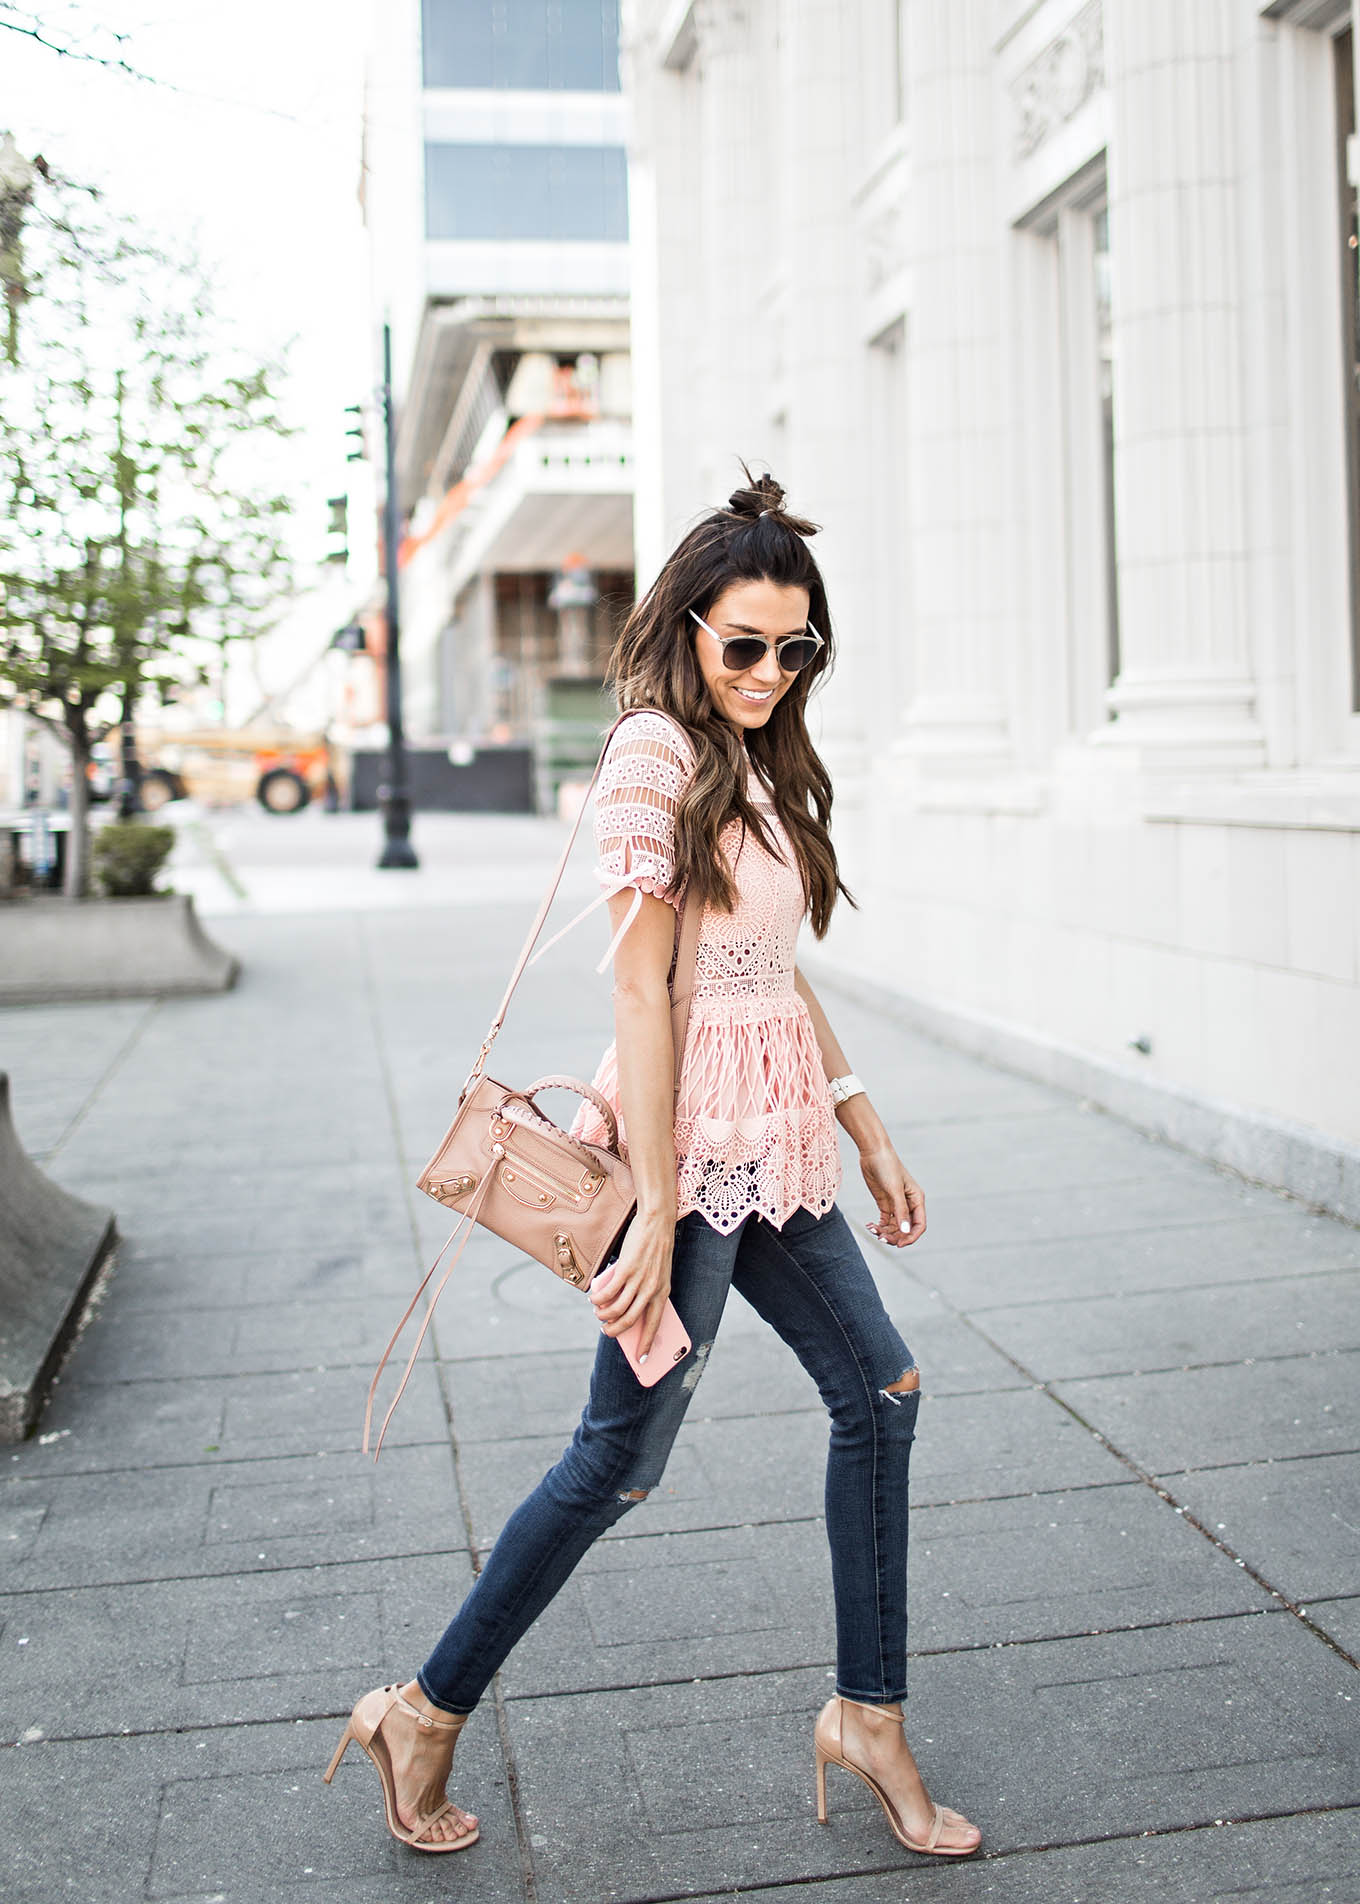 There is nothing prettier than blush pink lace! Christine Andrew looks utterly gorgeous in this ultra feminine style, worn on an intricate lace top. Pair something similar with heels and skinny jeans to steal Christine's style. Top: Intermix, Jeans: Saks Fifth Avenue.